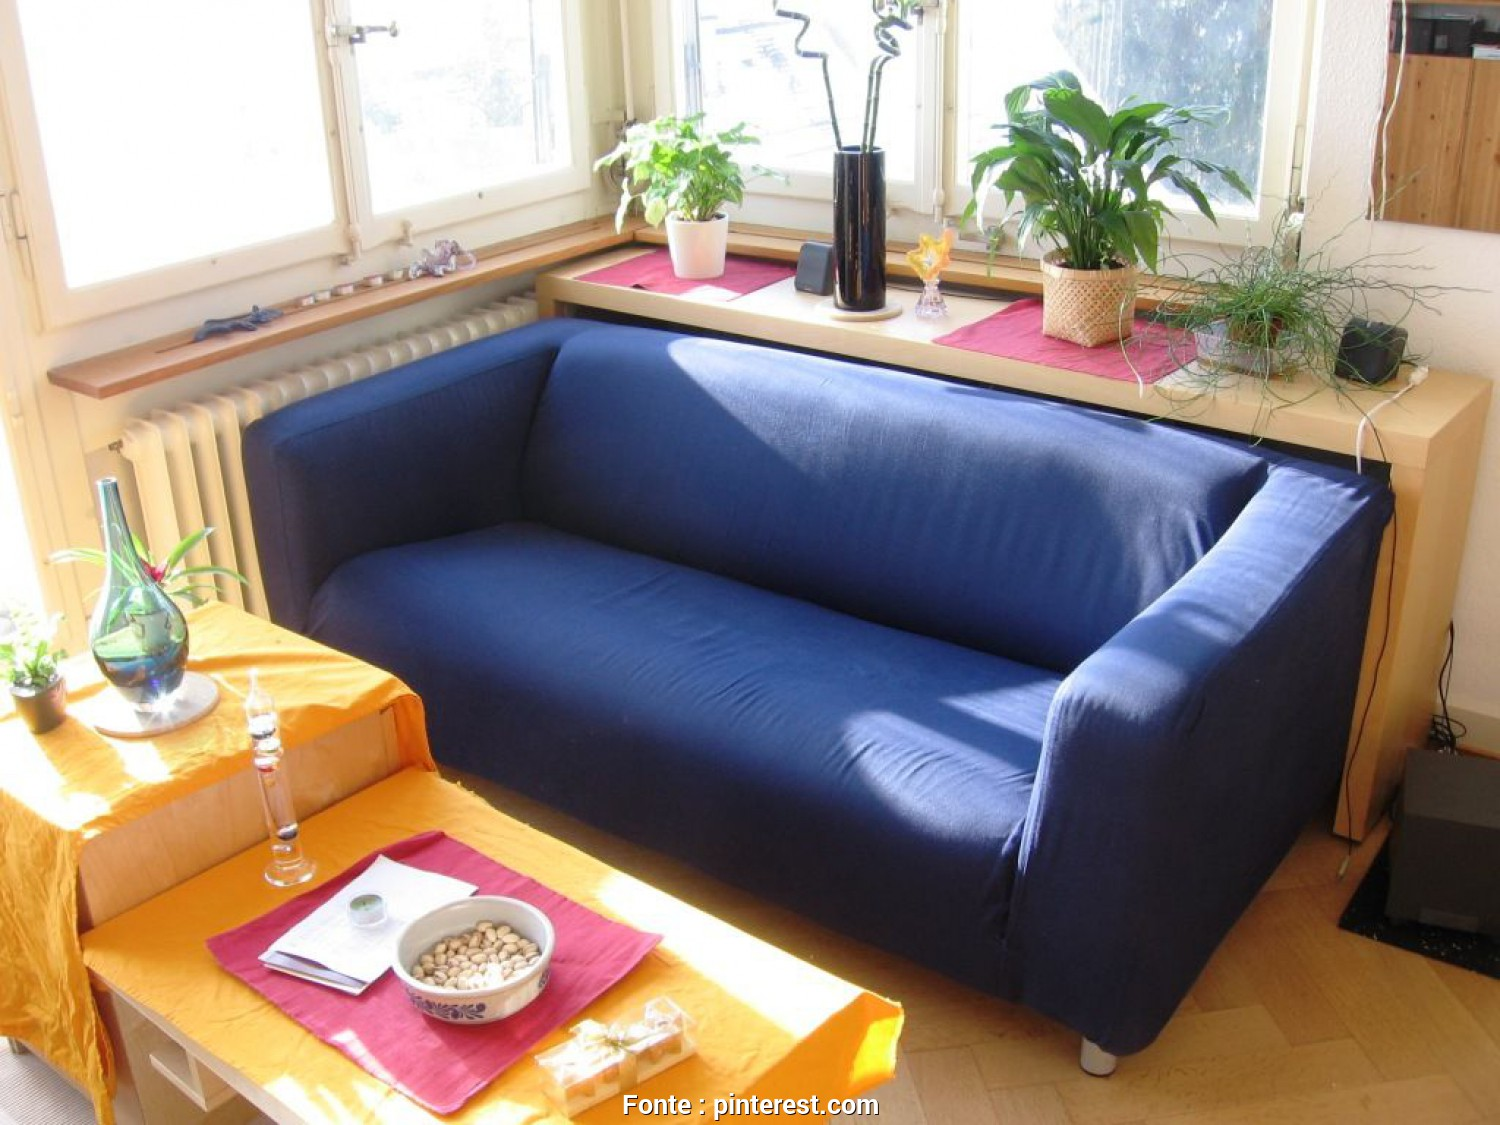 Klippan Ikea.De, Magnifico Blue Sofa Decorating Ideas,, , Chic Ikea Couch Decorating Ideas, Sale Ikea Couch Klippan Blue